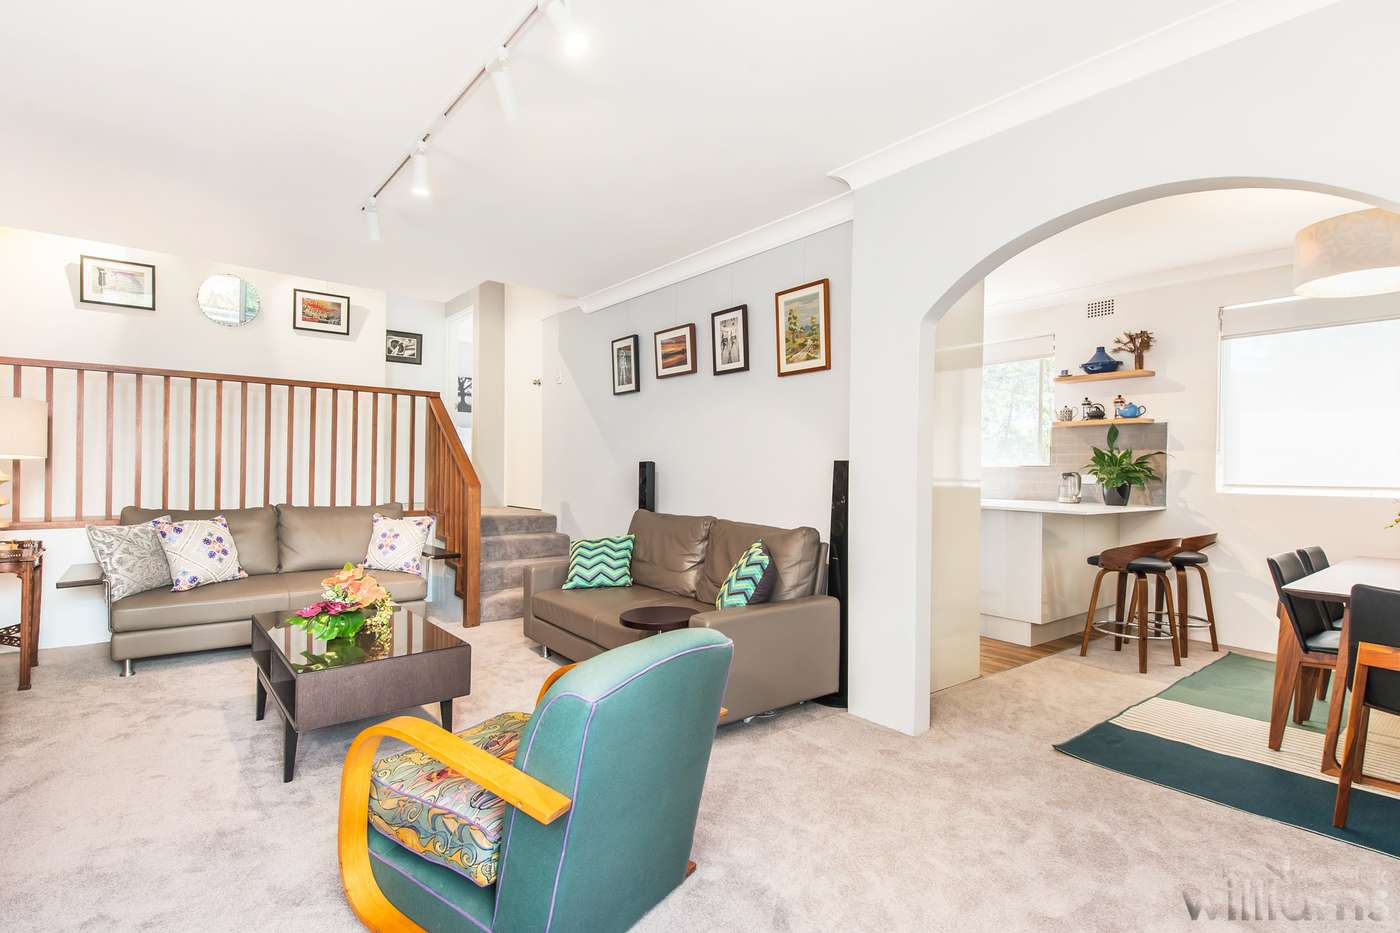 Main view of Homely apartment listing, 22/183 Hampden Road, Wareemba, NSW 2046